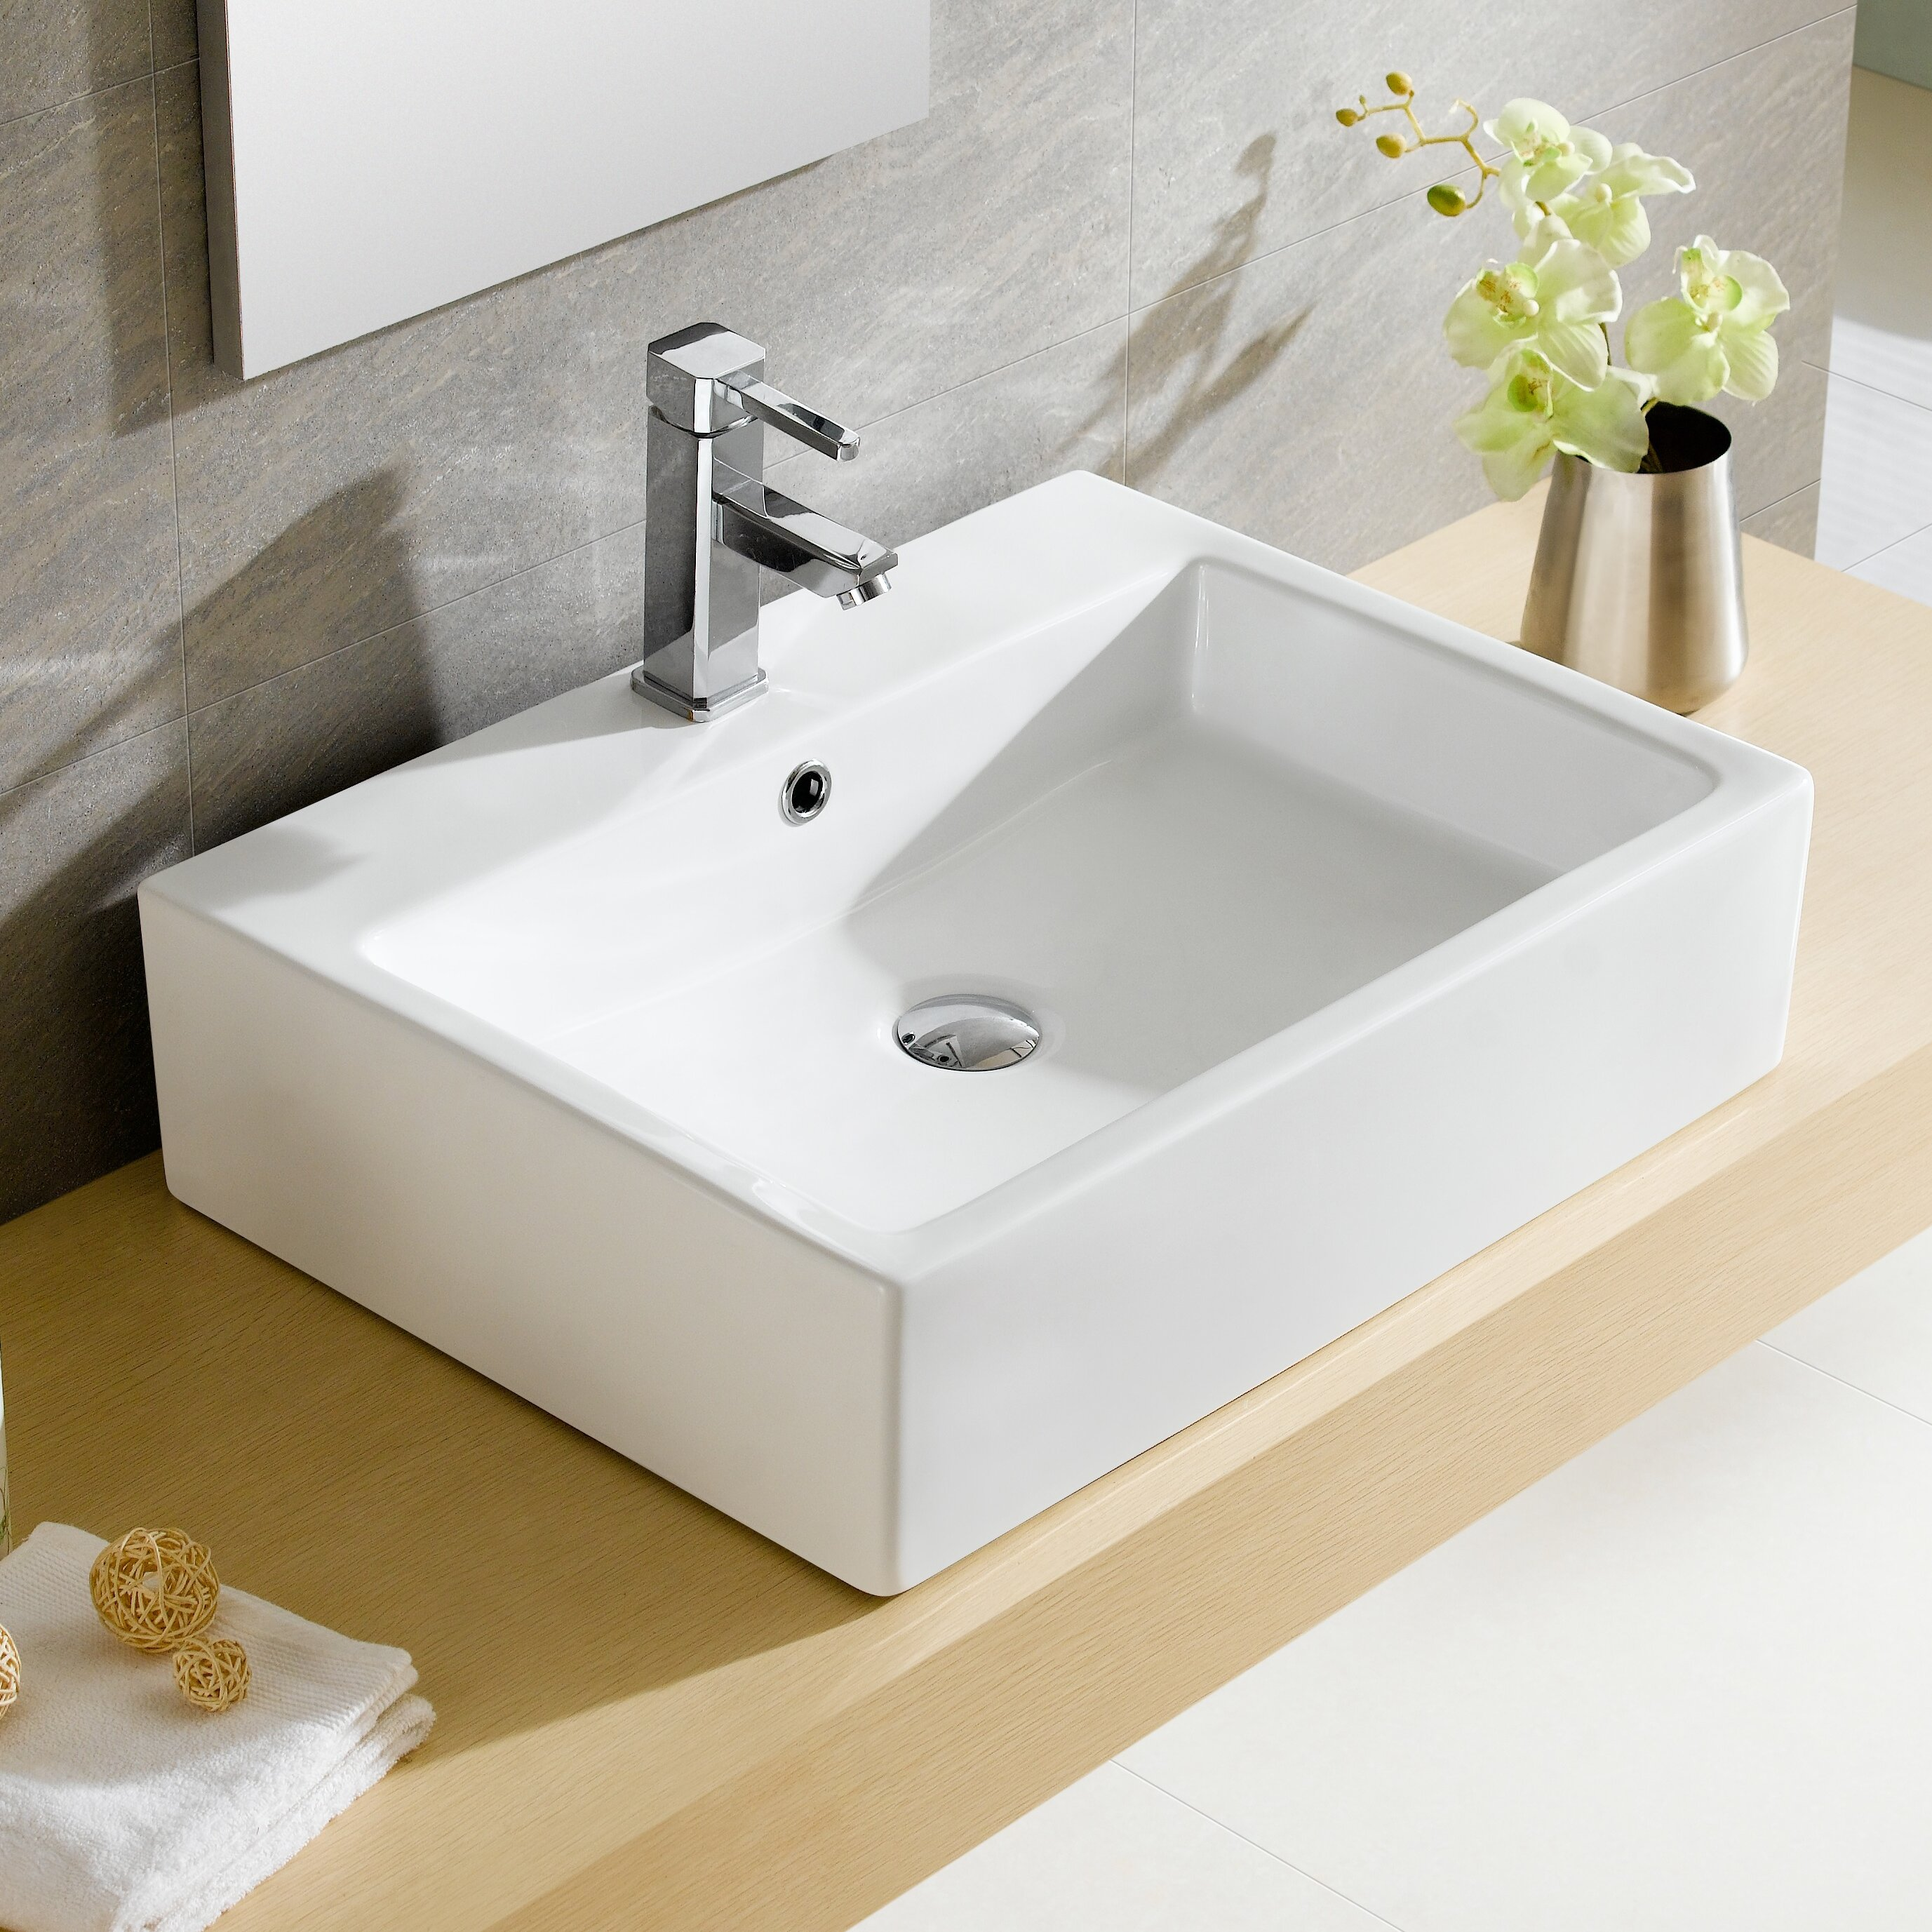 rectangular bathroom sink topmount fixtures modern vitreous rectangular vessel bathroom 20115